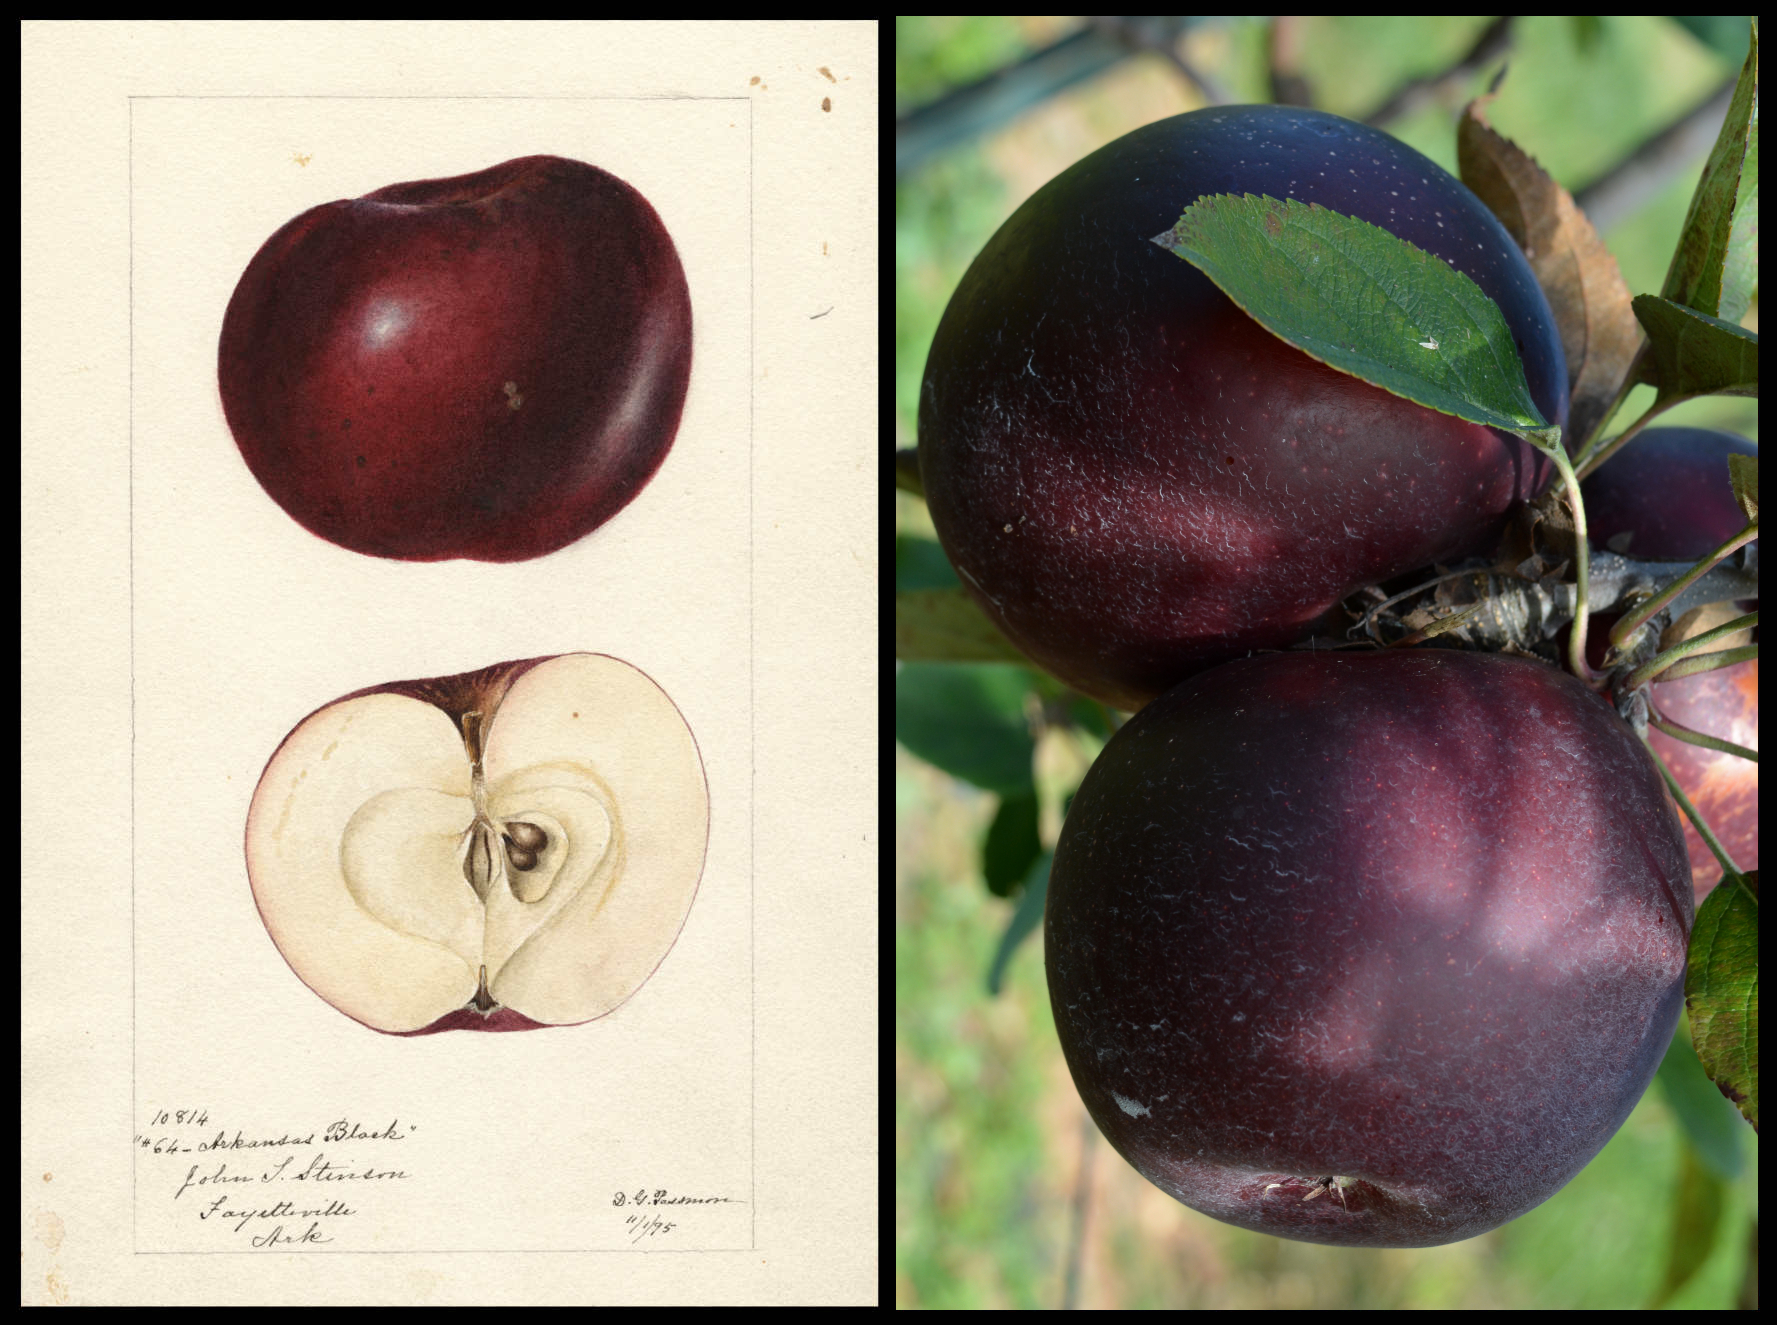 a very dark red apple that appears to be purple or almost black